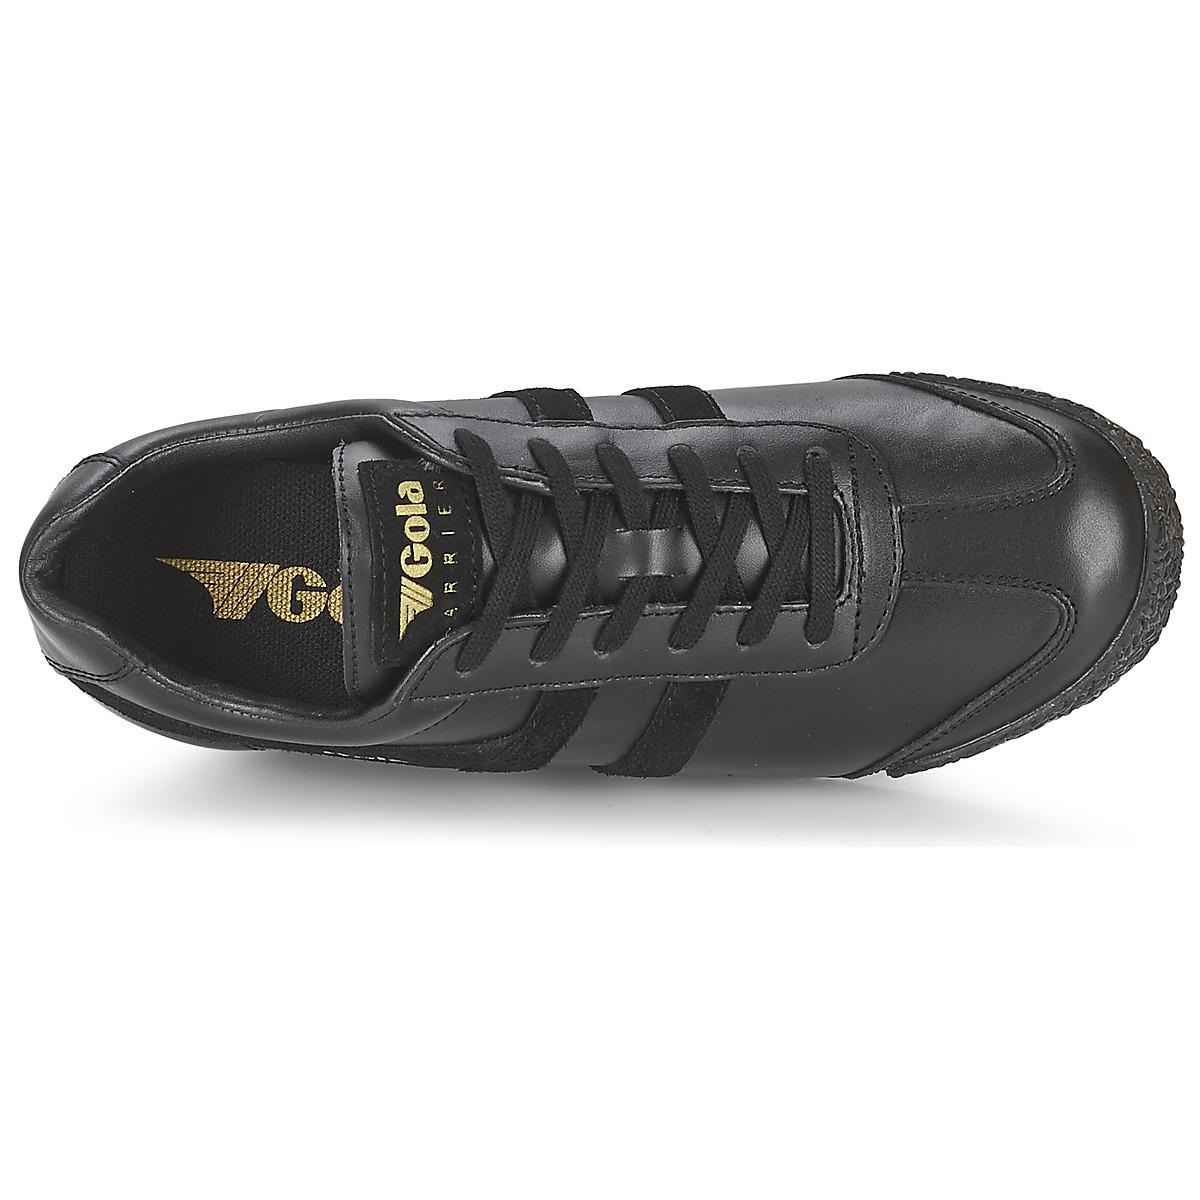 Gola Leather Harrier Mono Men's Shoes (trainers) In Black for Men